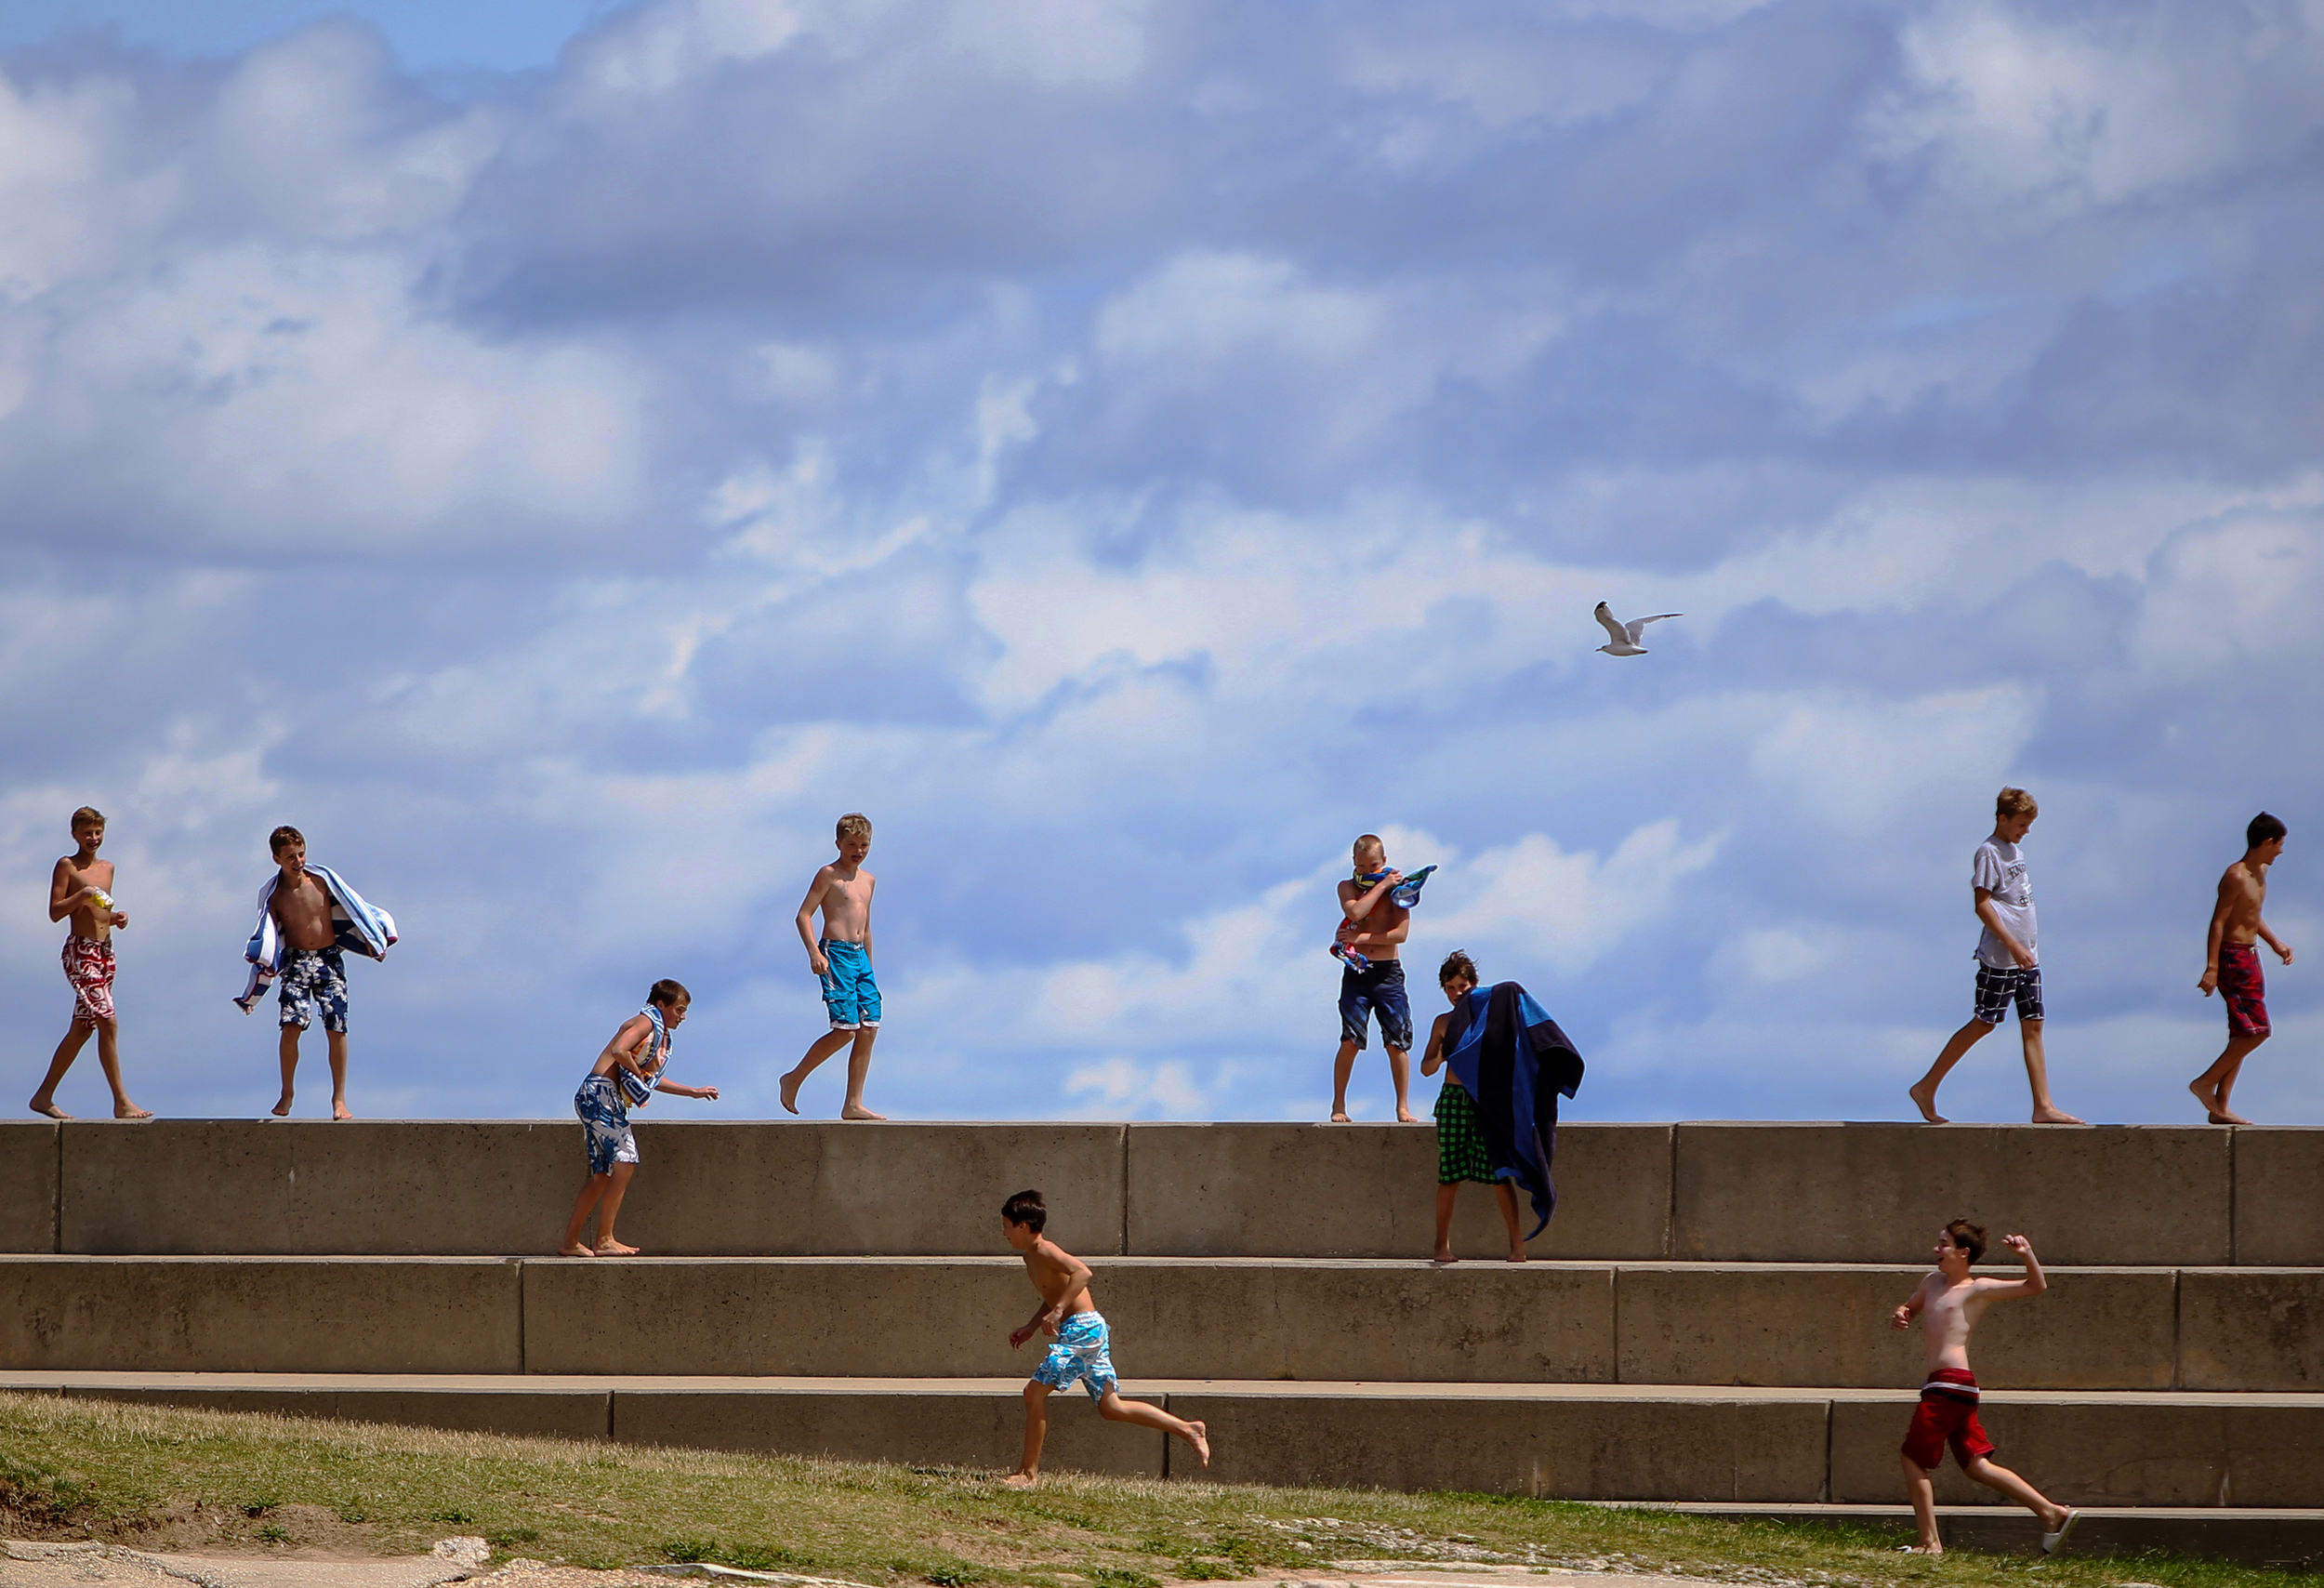 Children play along the 12th Street Beach in Chicago on August 13, 2013.  Lifeguards had told them to get out of Lake Michigan because of rip tides and high levels of e. coli.